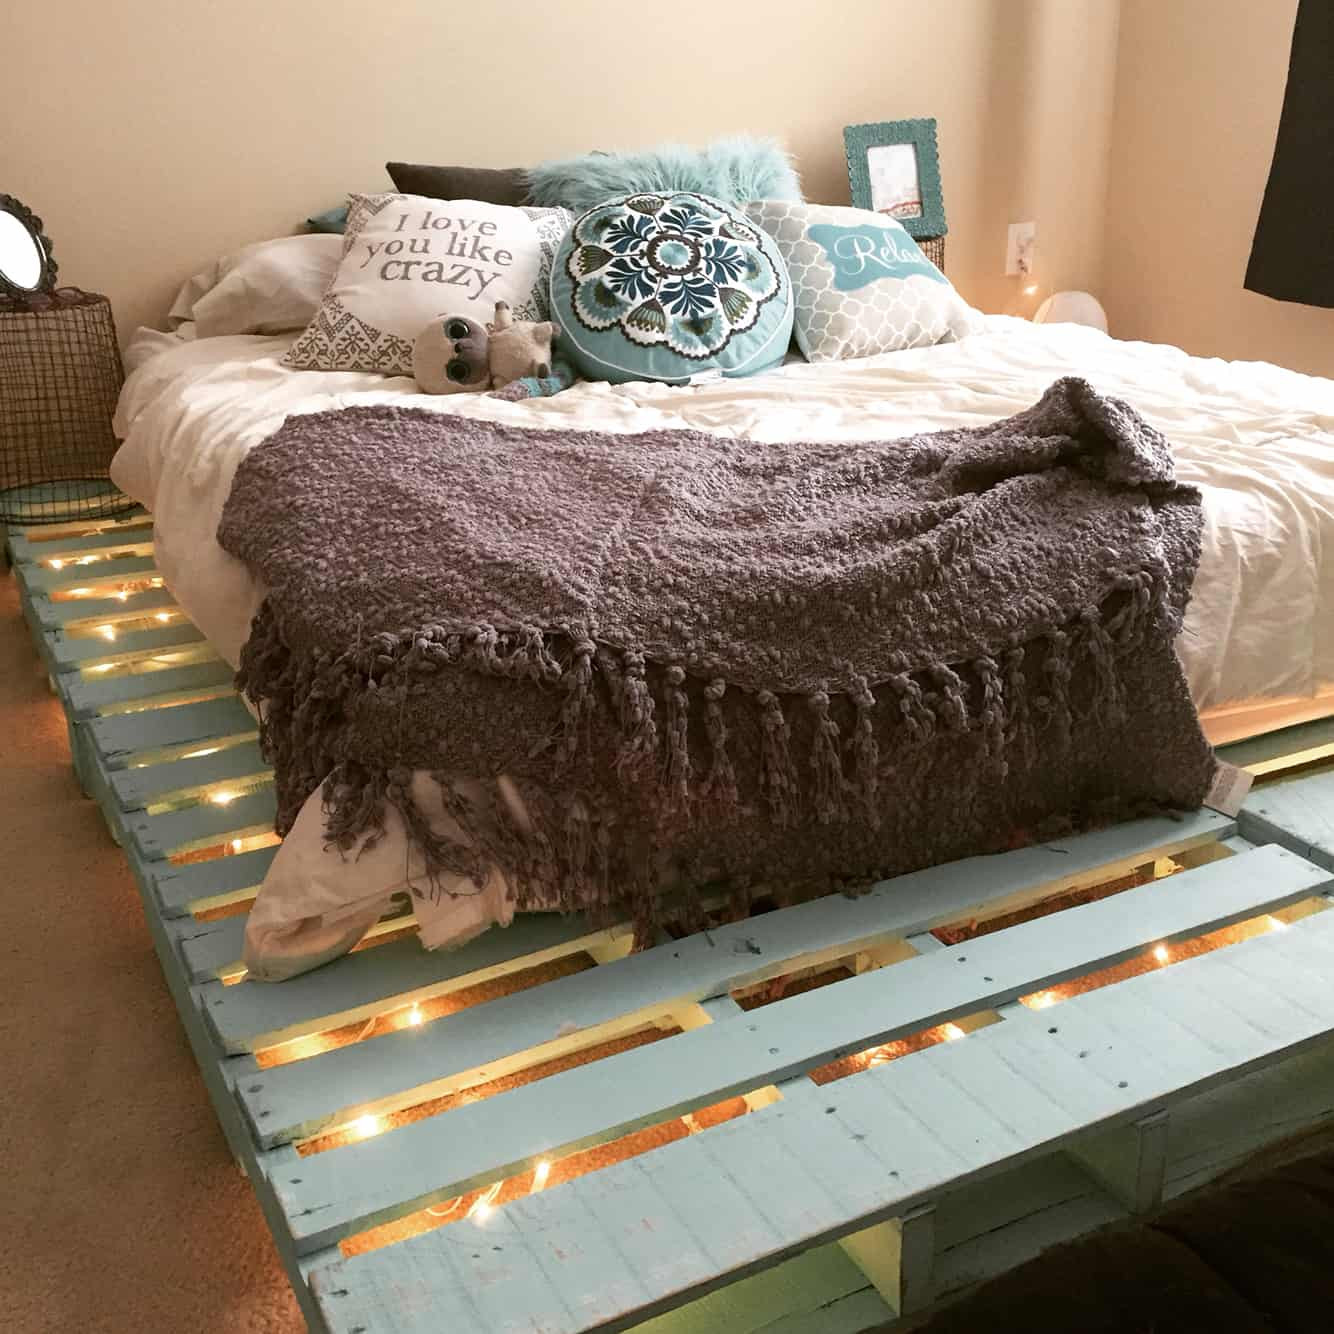 Best ideas about DIY Pallet Bed Frames . Save or Pin Top 62 Recycled Pallet Bed Frames DIY Pallet Collection Now.